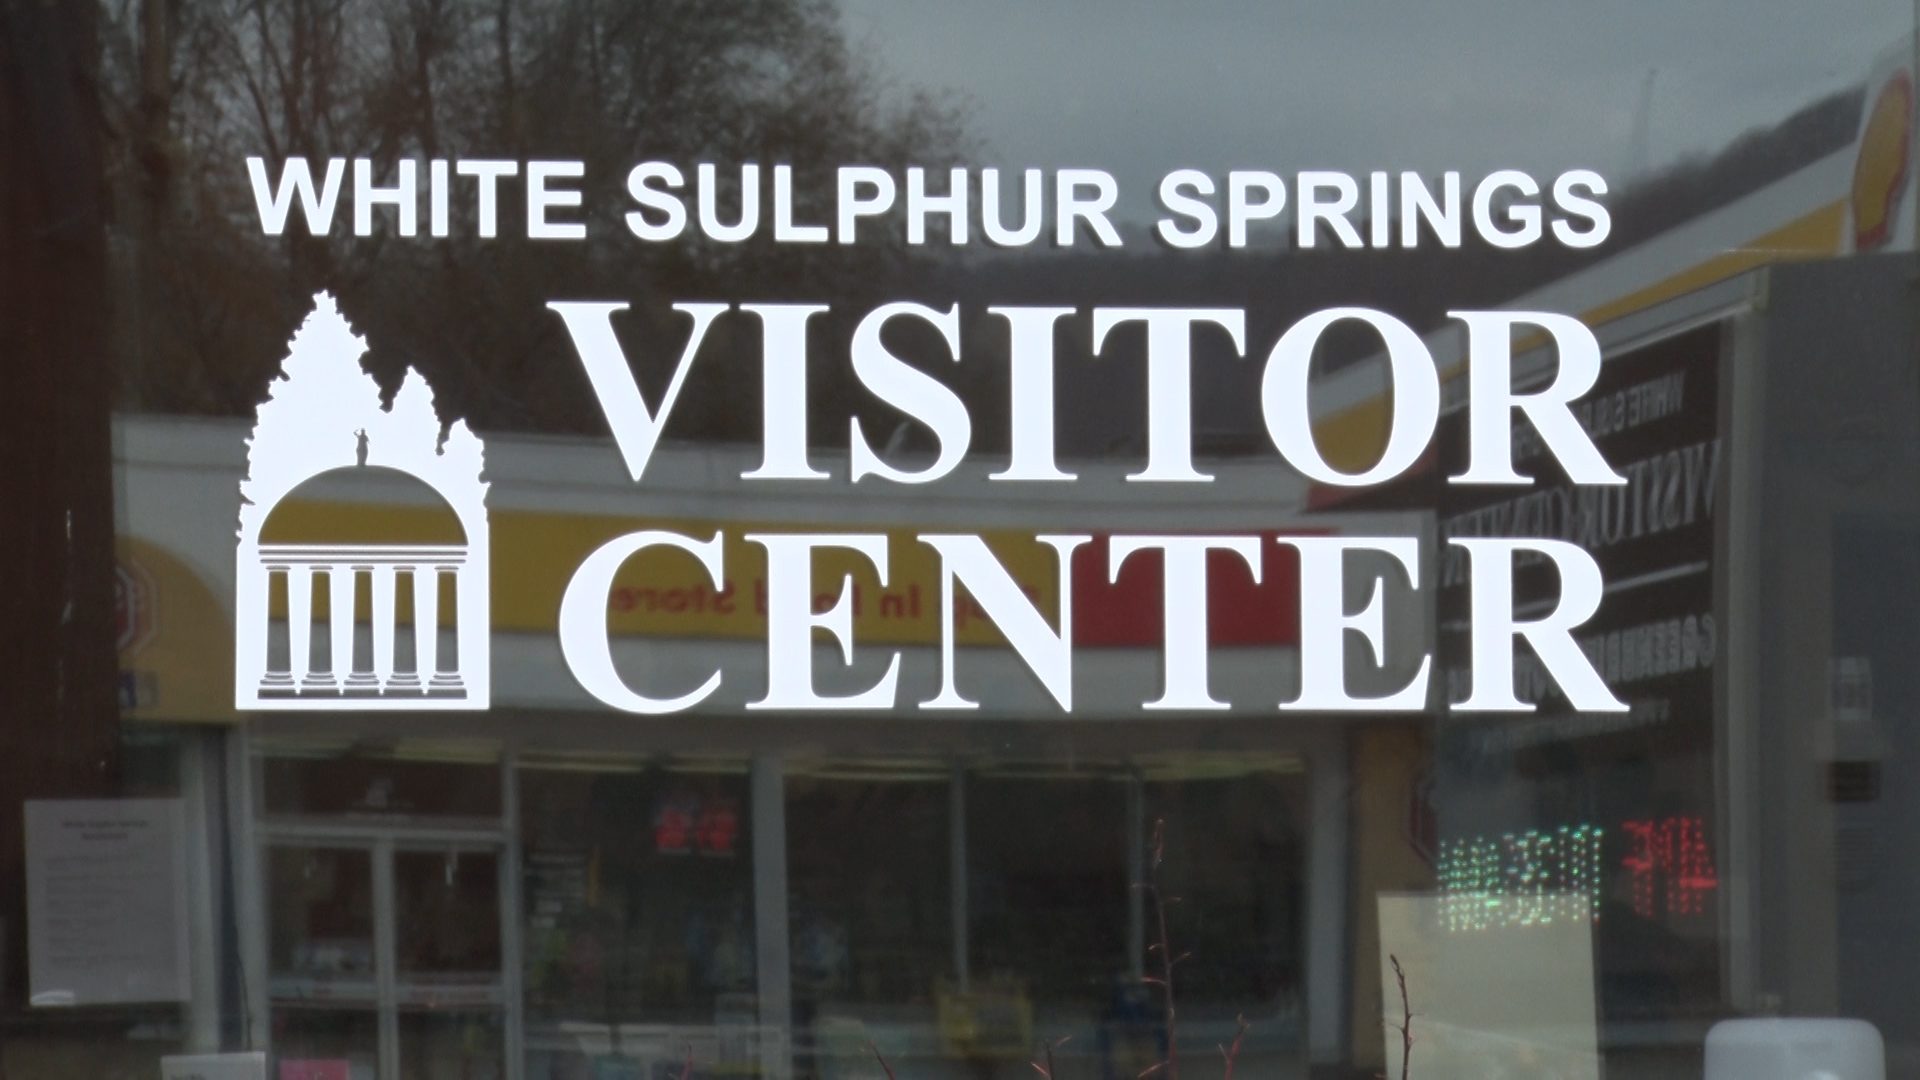 white sulphur springs visitor center.jpg